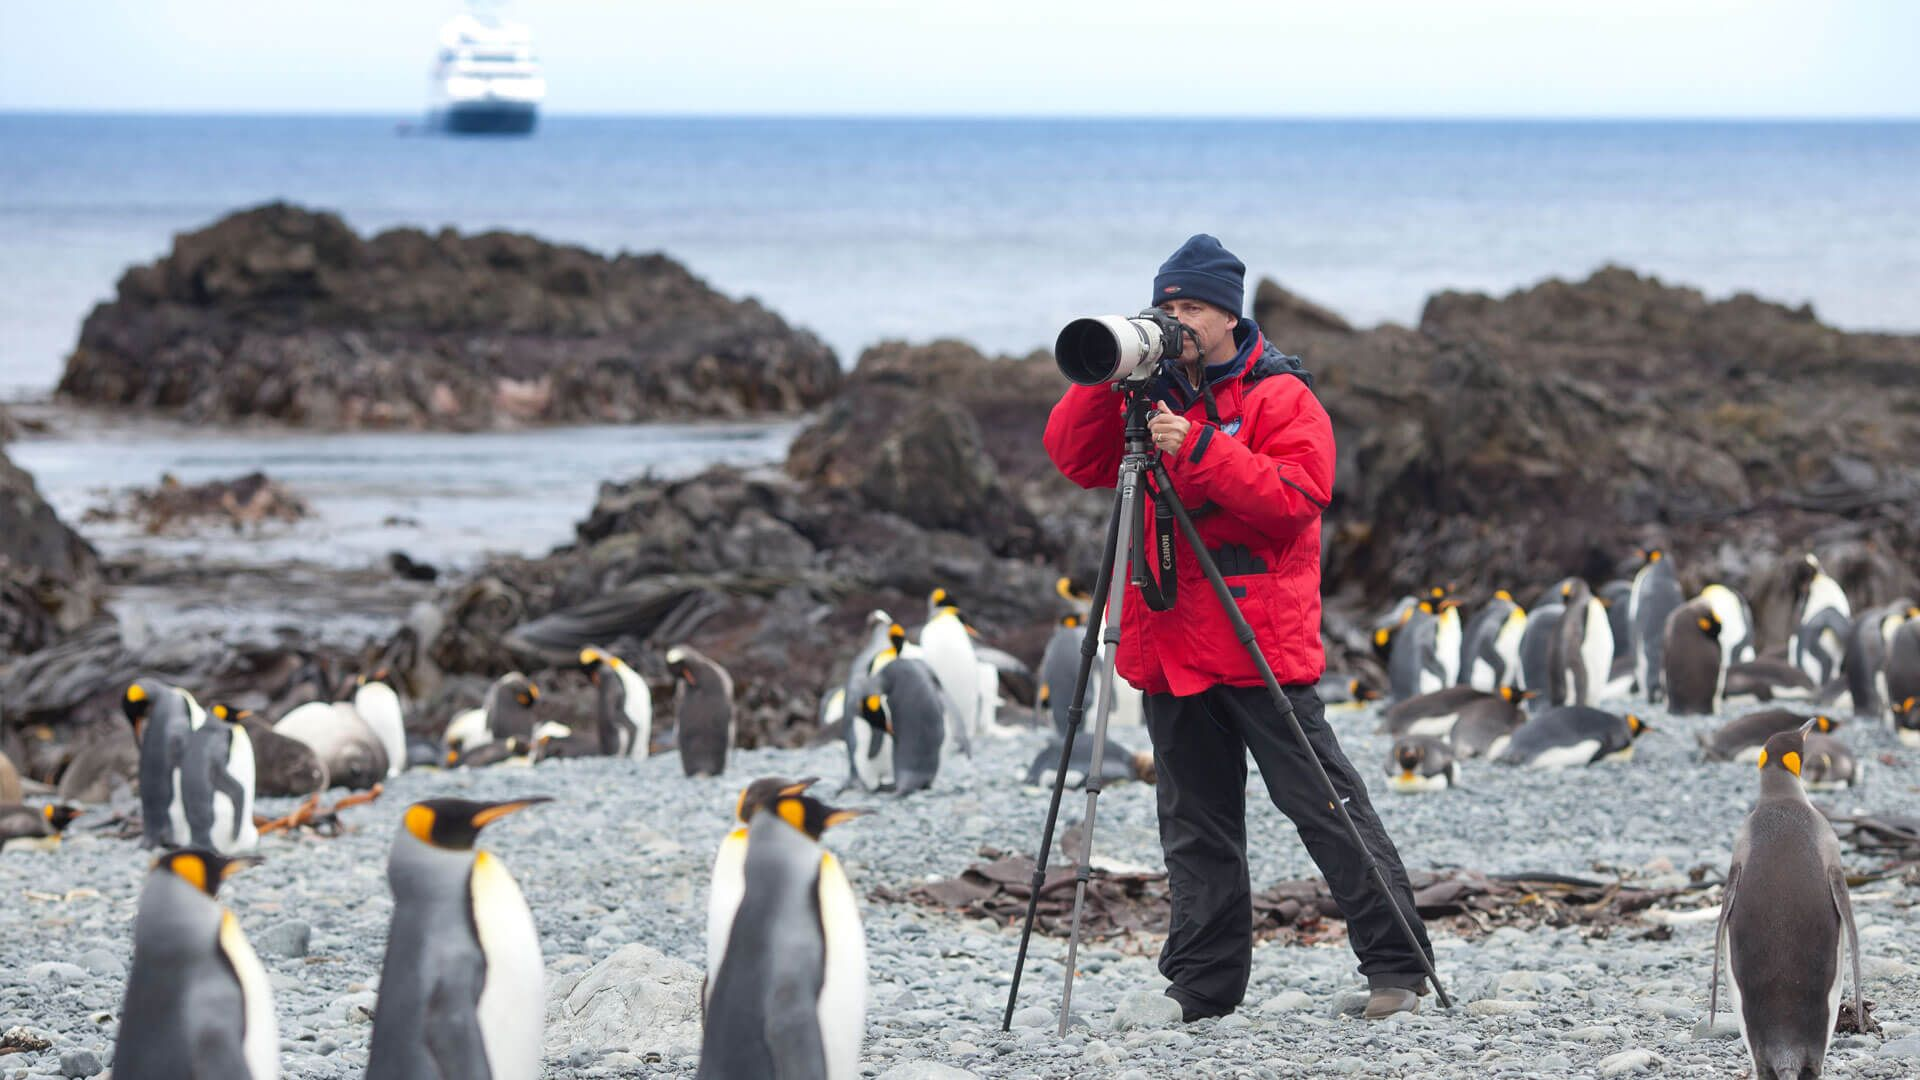 A glimpse of the Galapagos Islands, Southern Ocean